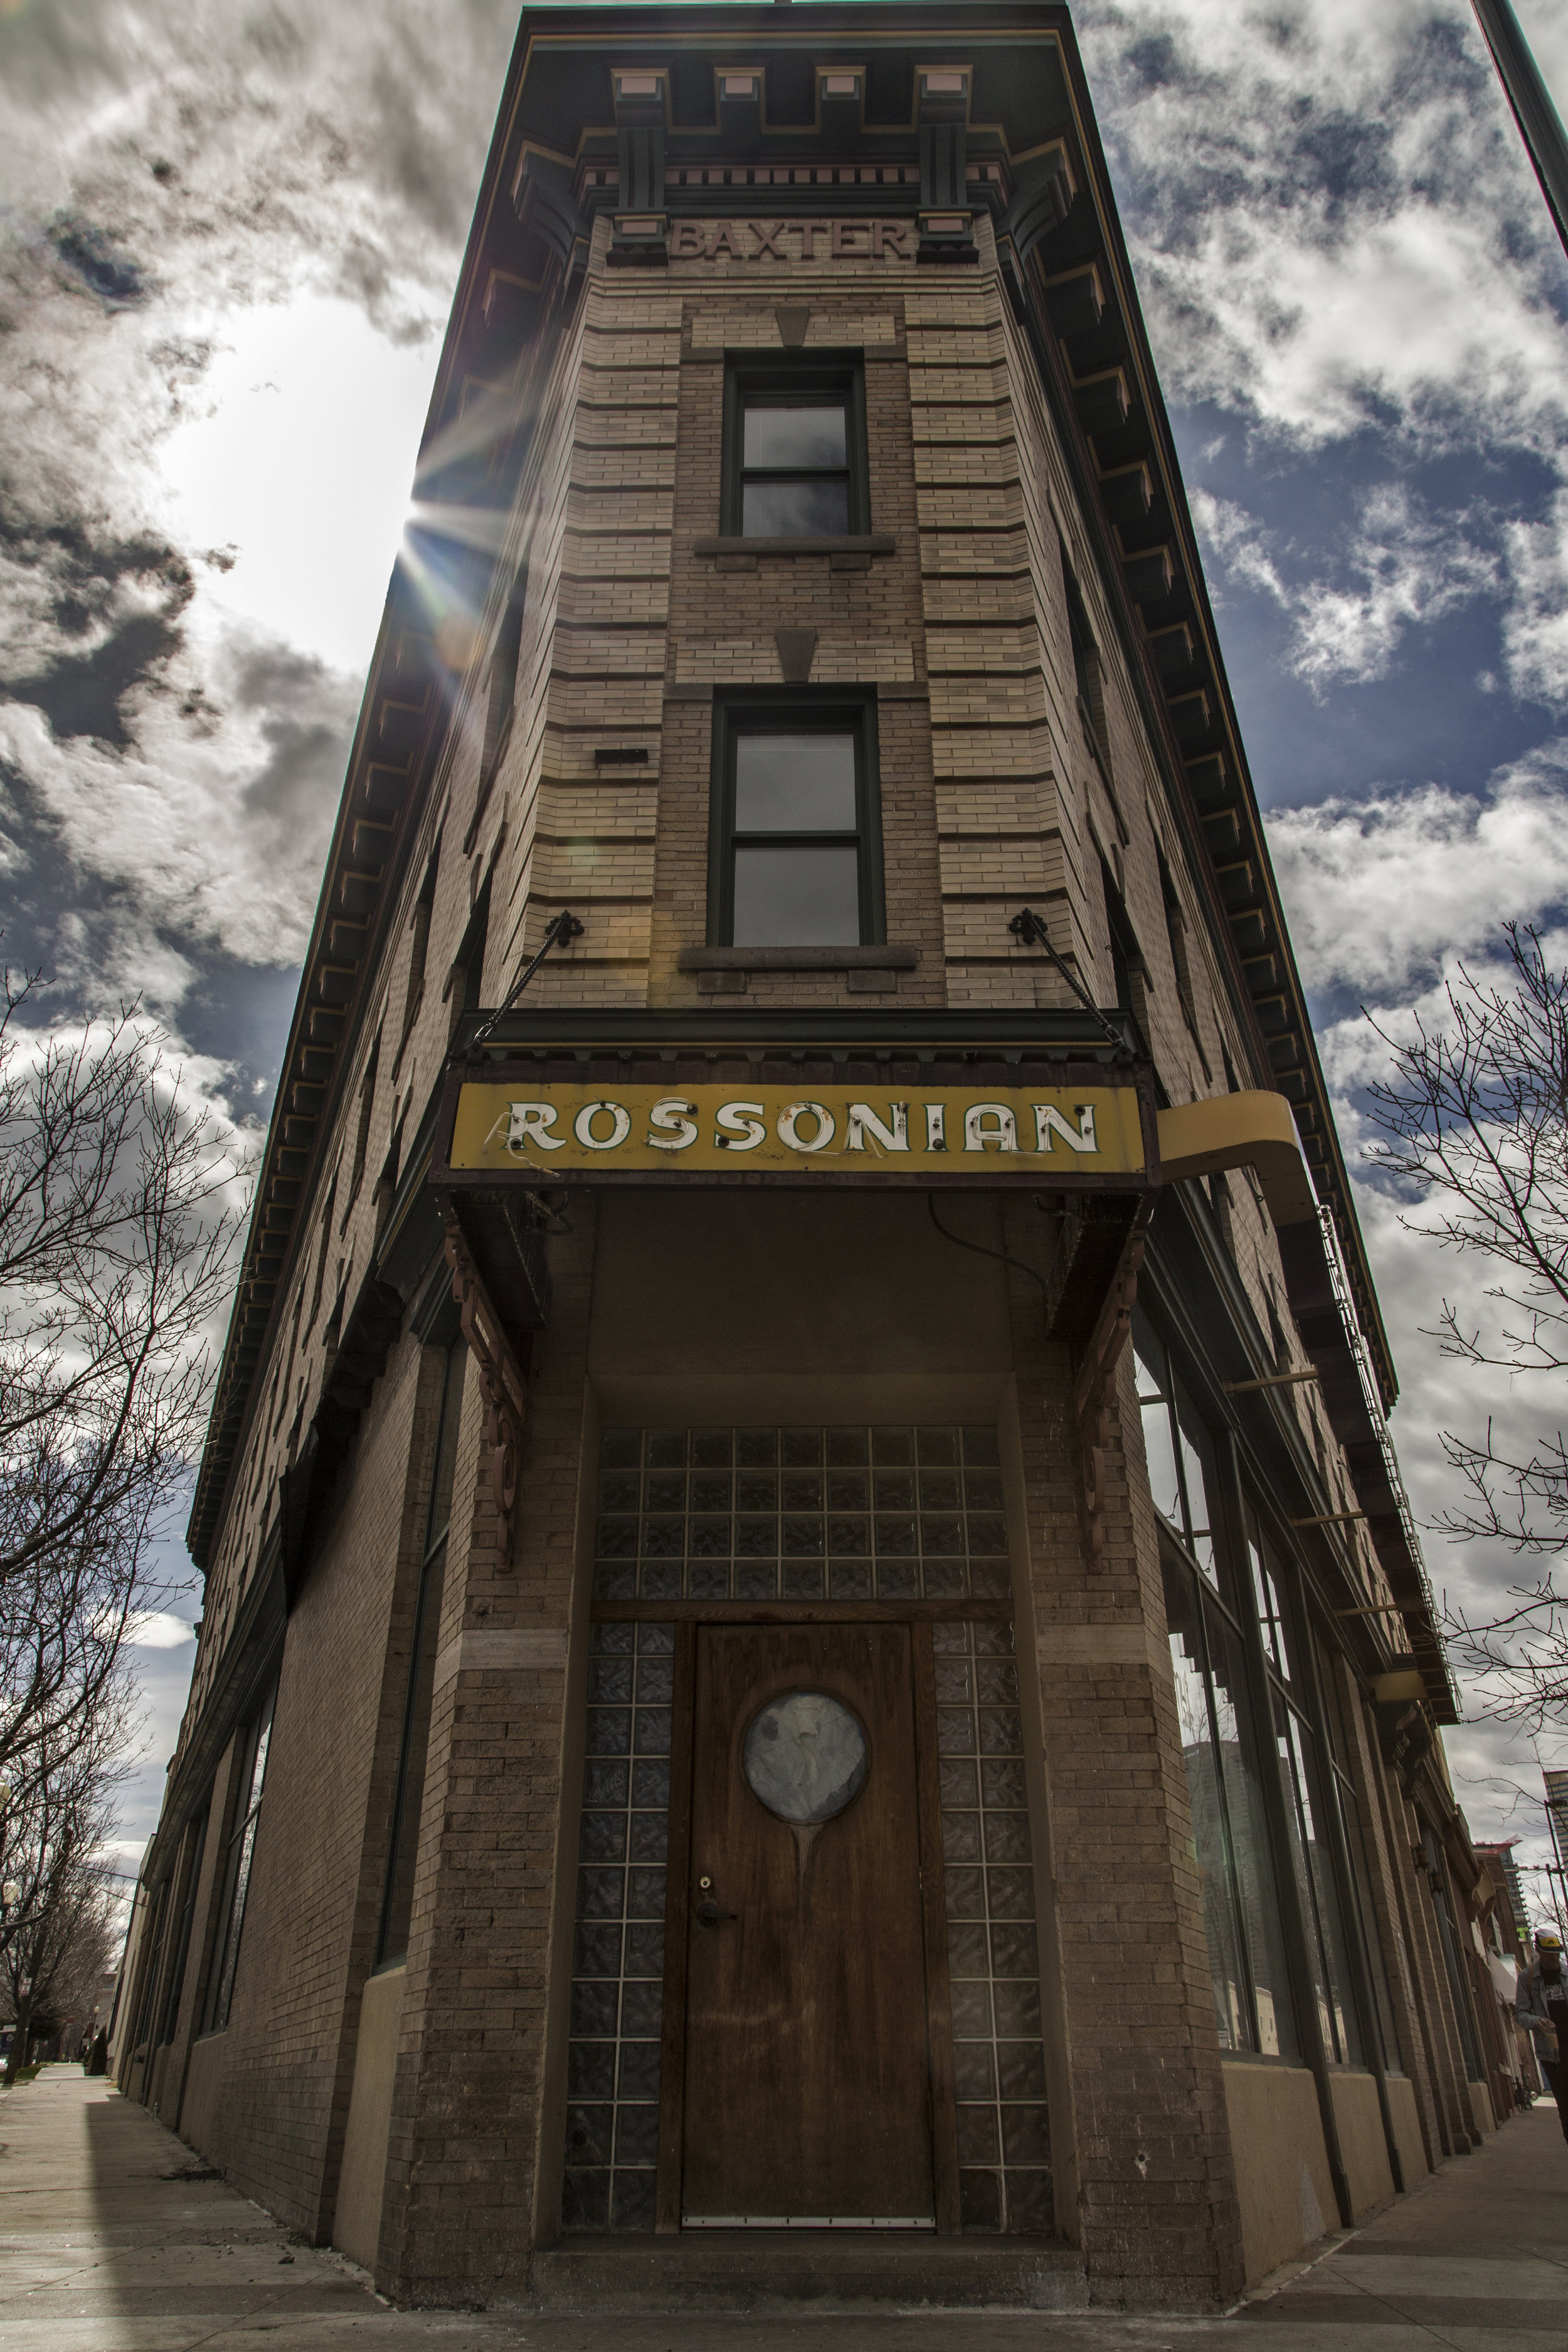 Rossonian - Denver, Colorado.  Photograph by Candacy Taylor, 2018